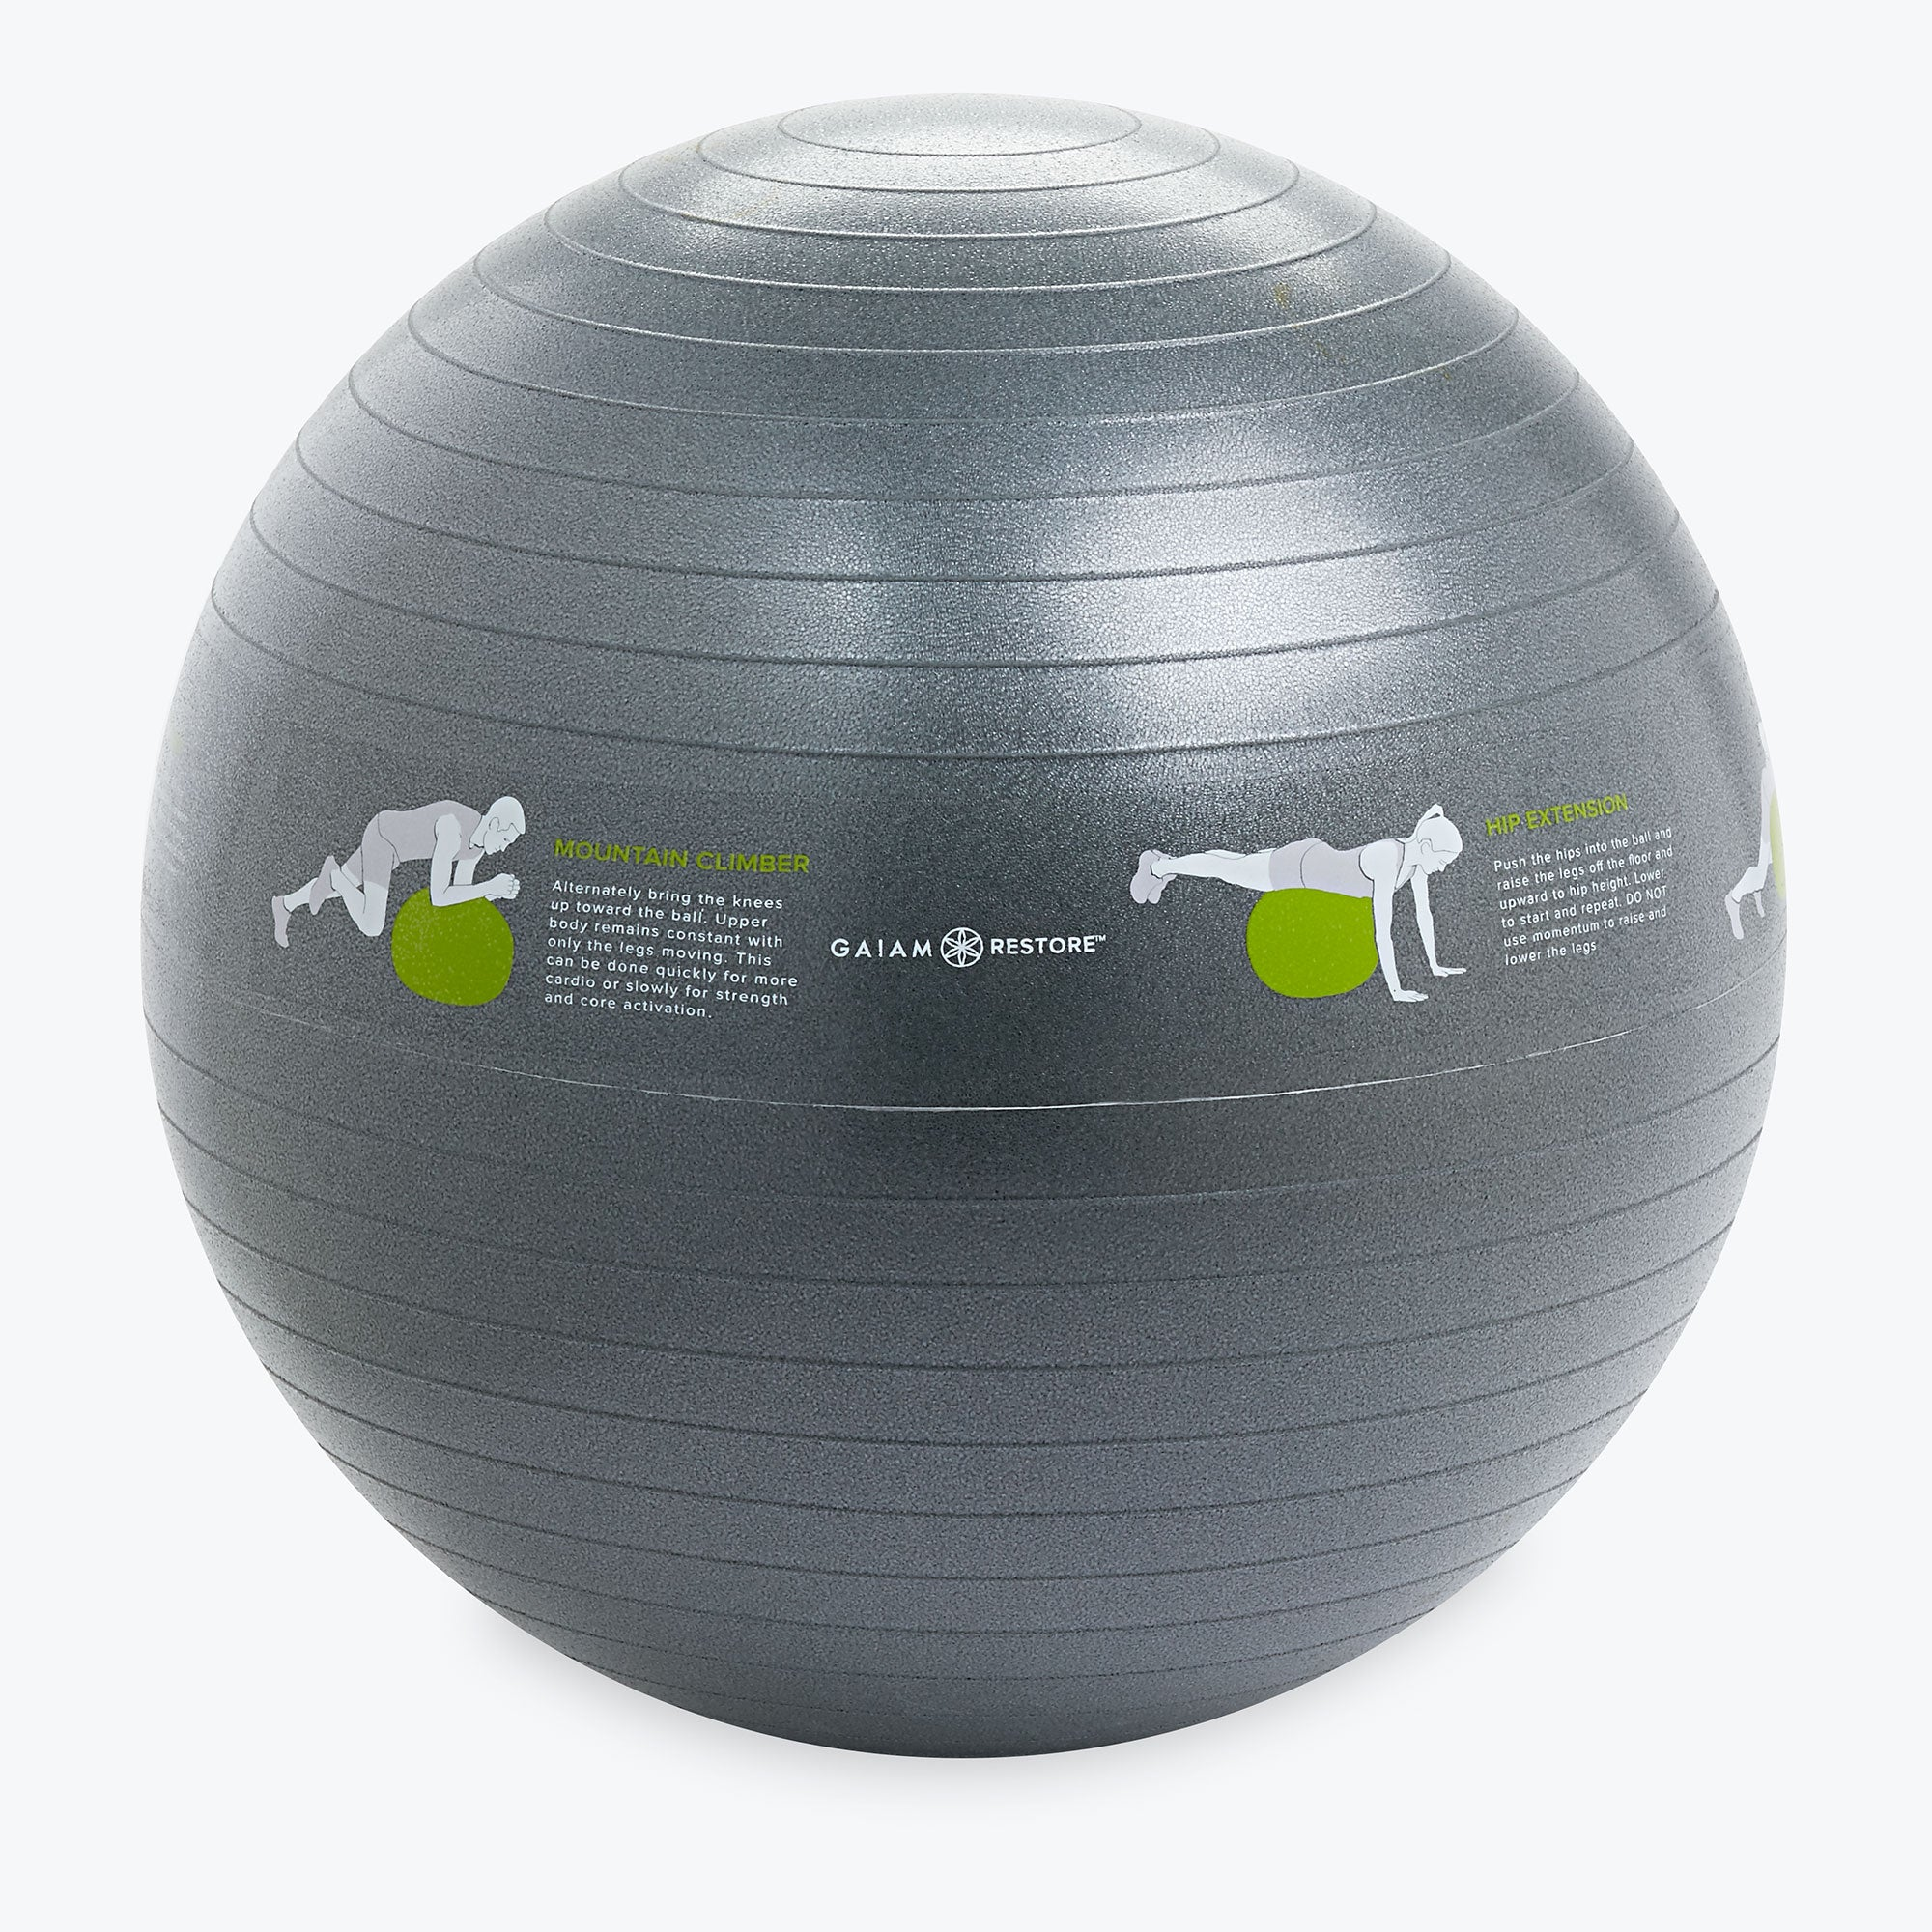 Image of Restore Self-Guided Stability Ball